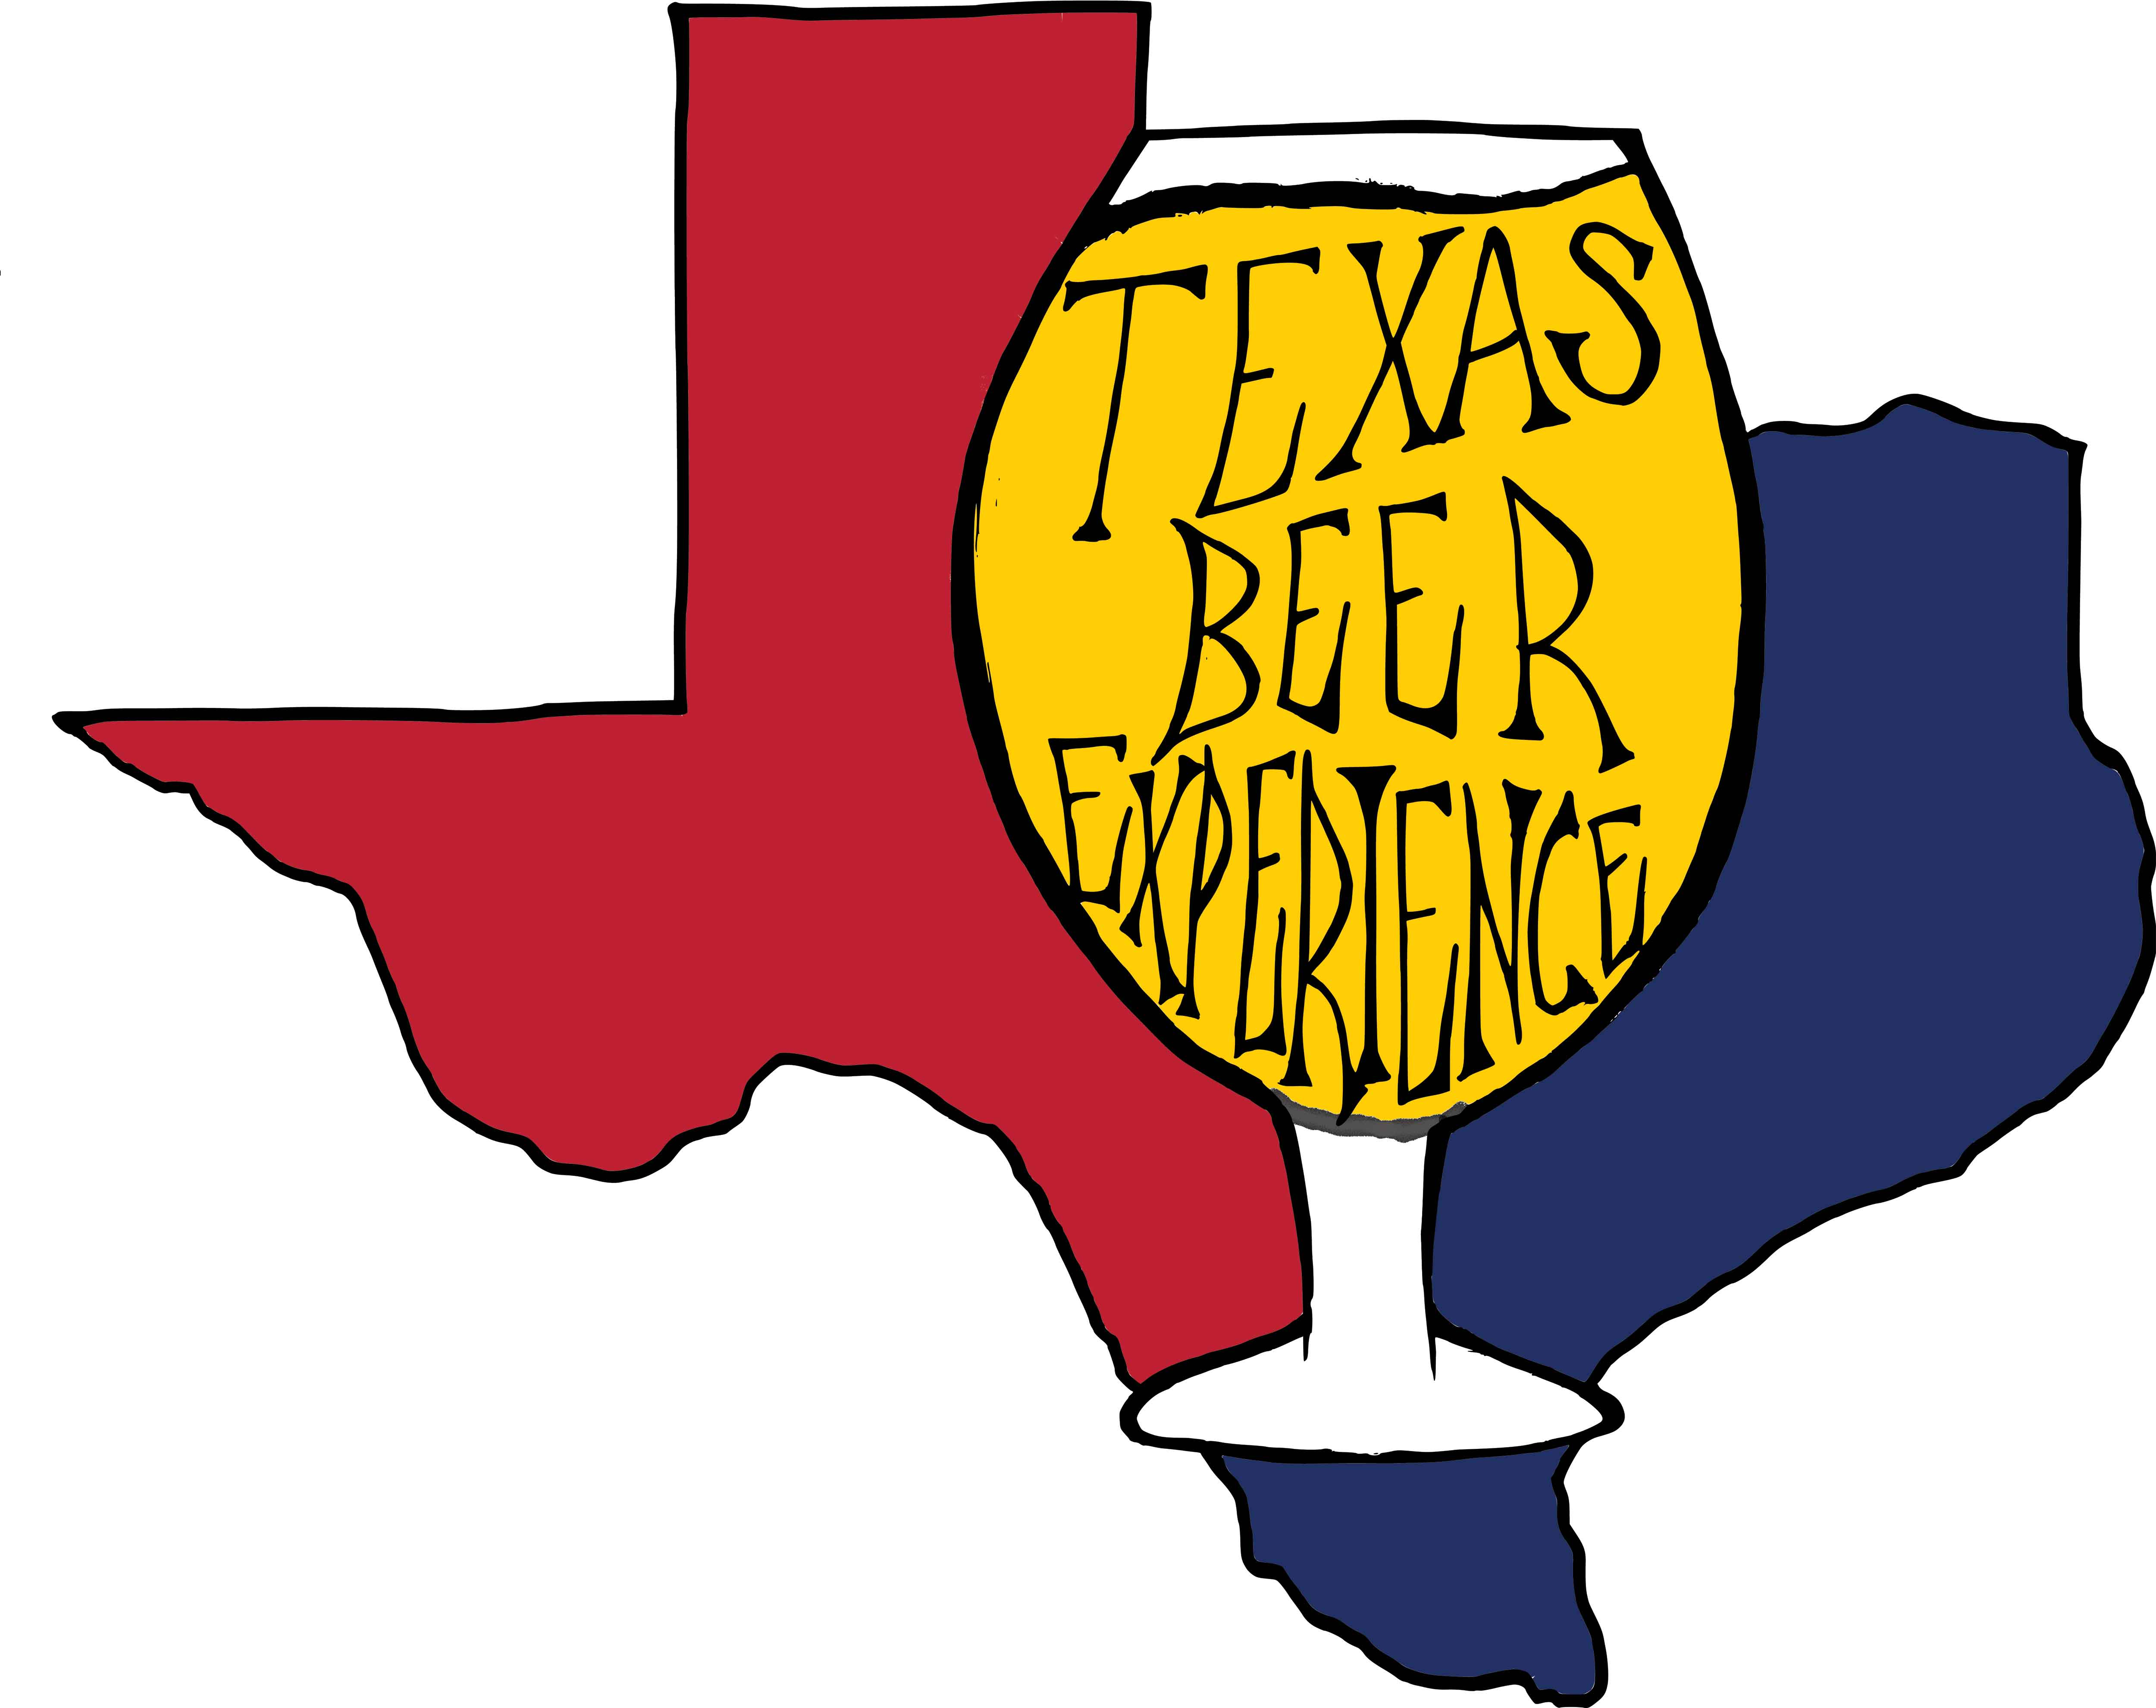 Texas Beer Experience